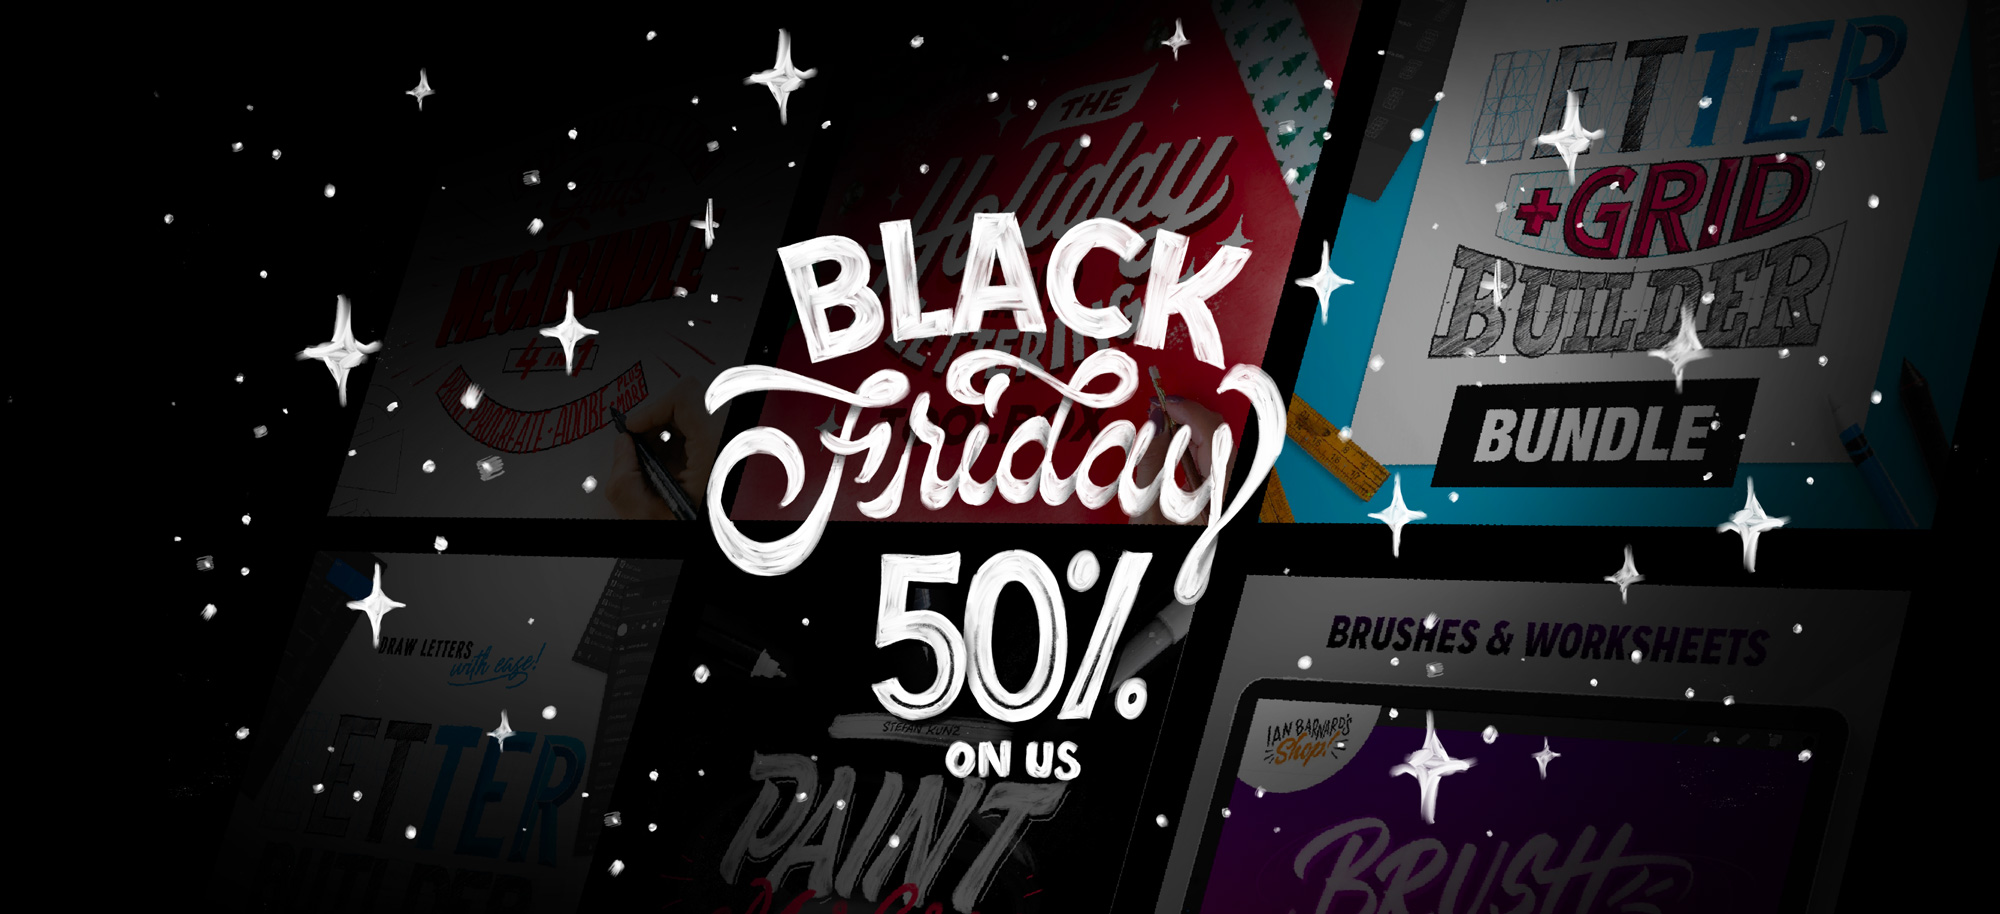 Save 50% on all Stefan Kunz's lettering courses and tools this Black Friday weekend.